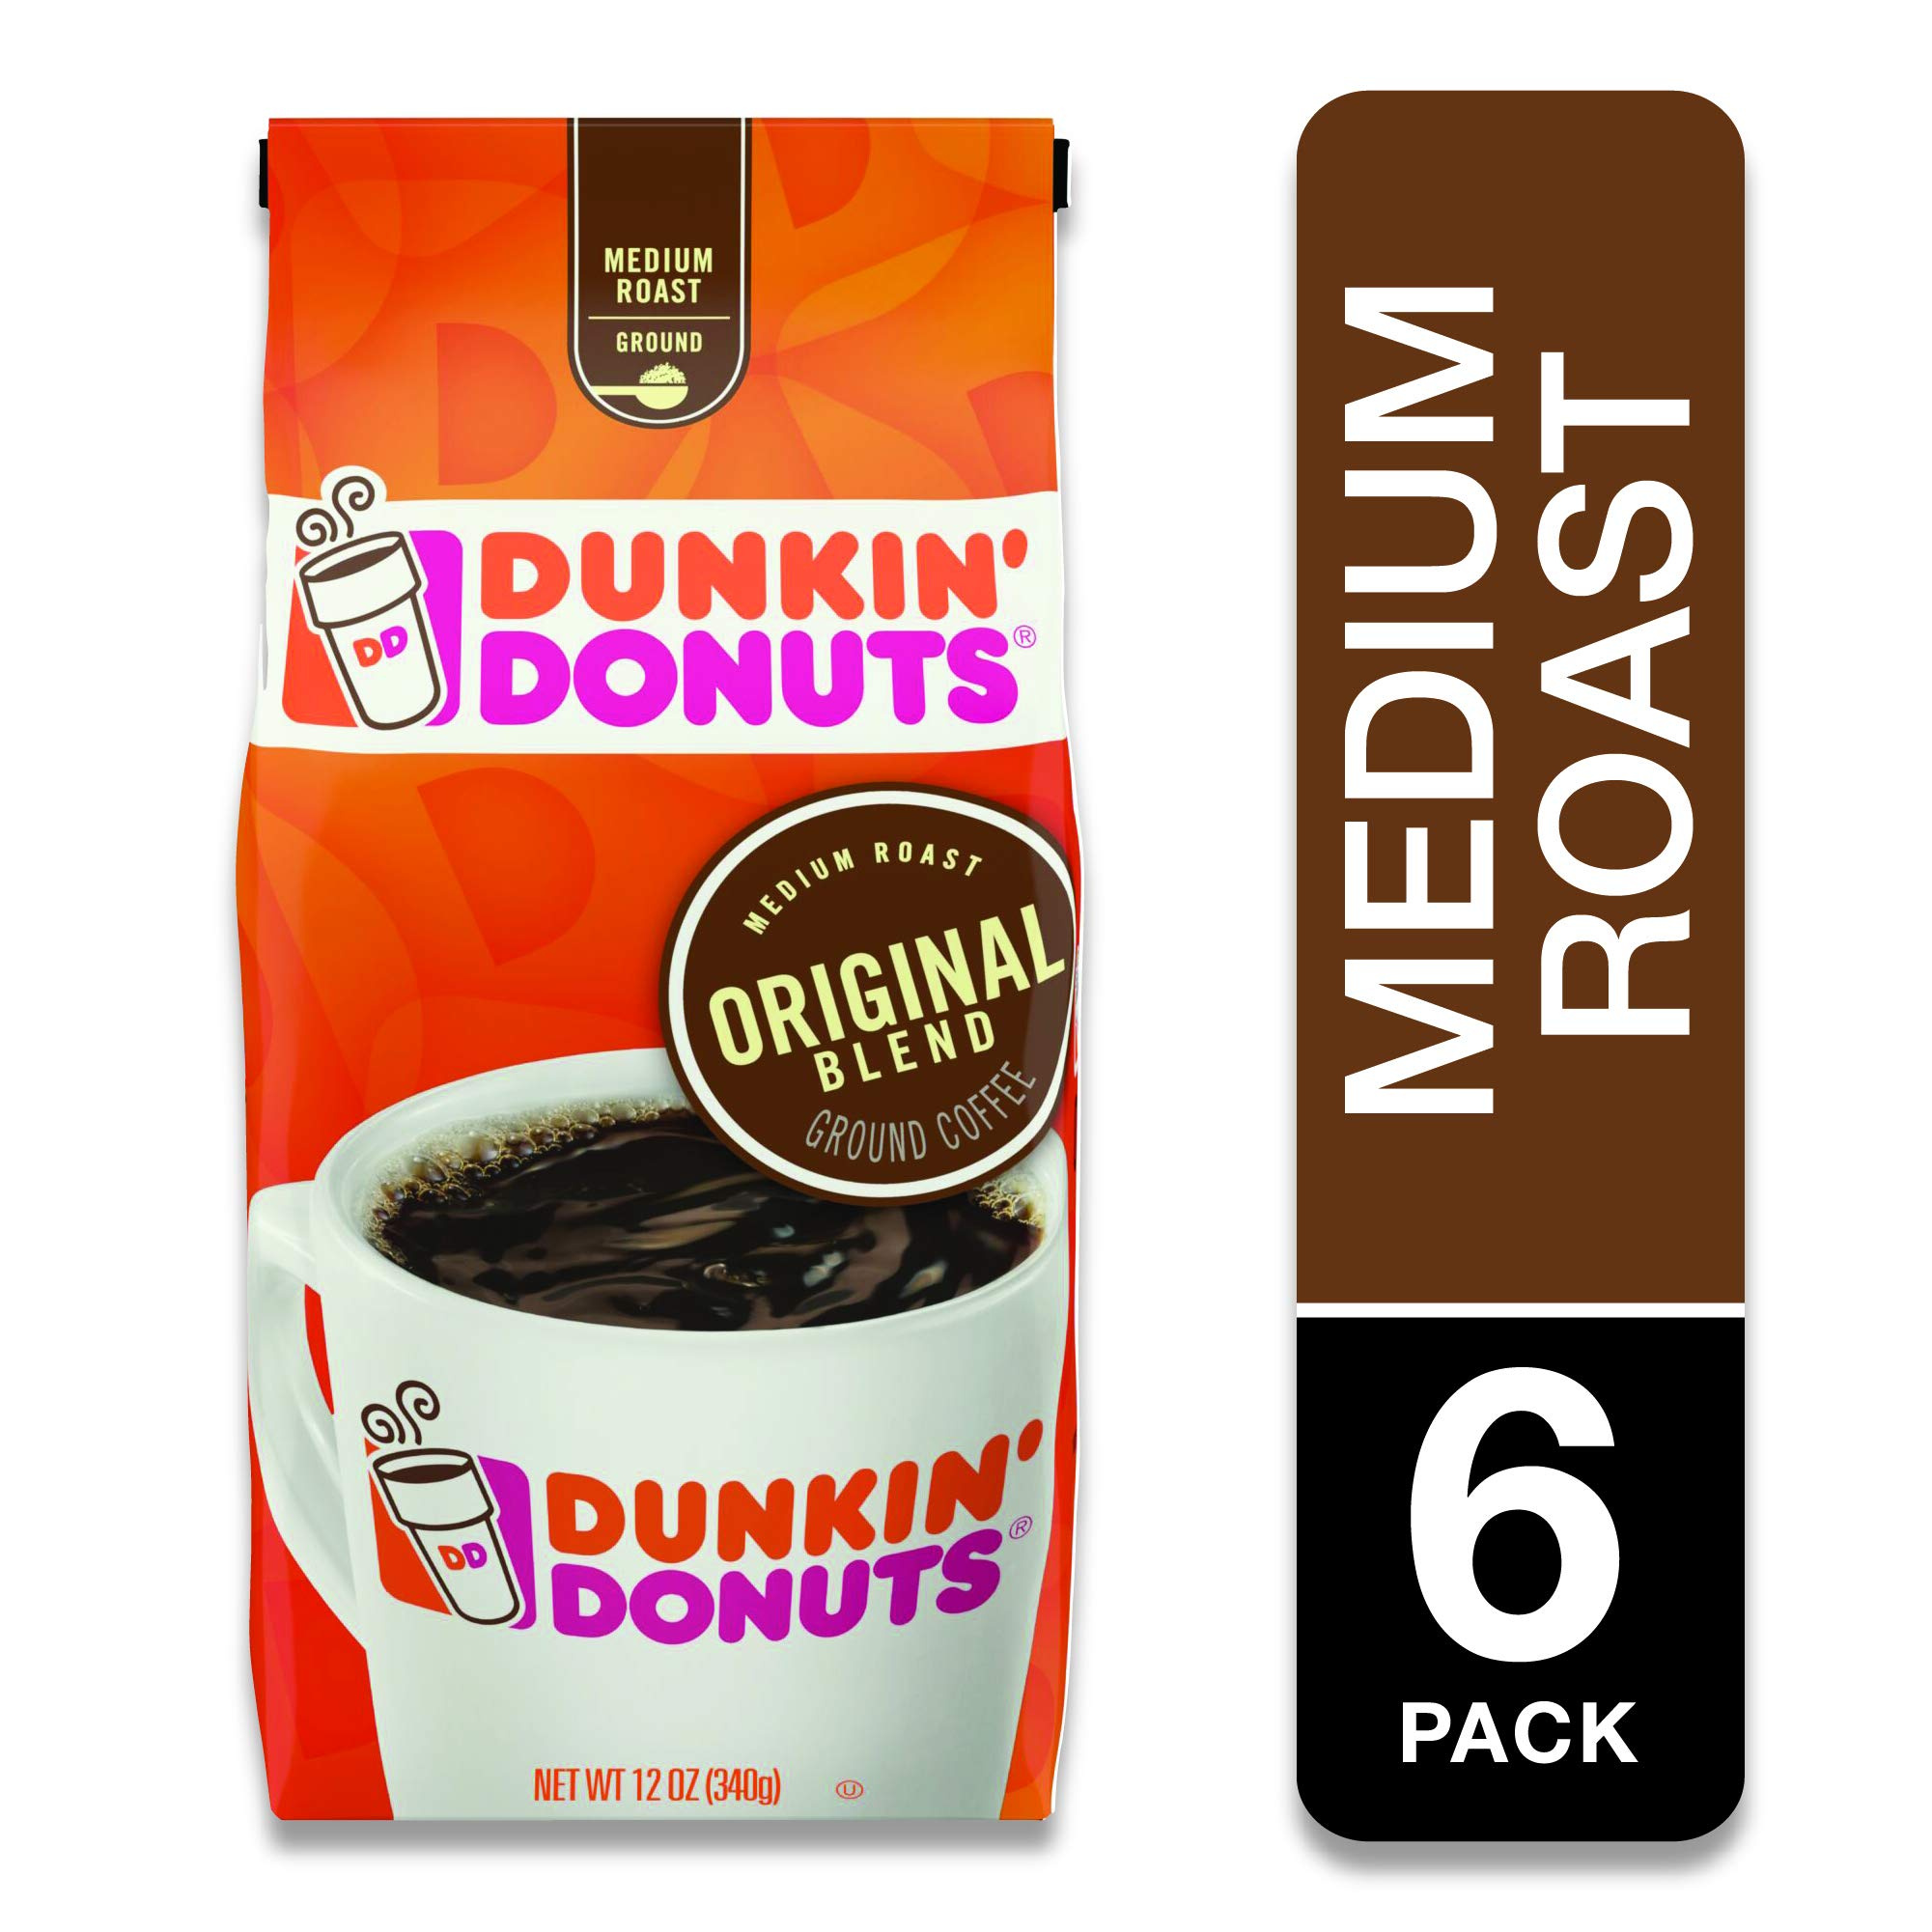 Dunkin' Donuts Original Blend Medium Roast Whole Bean Coffee, 12 Ounces (Pack of 6) by Dunkin'